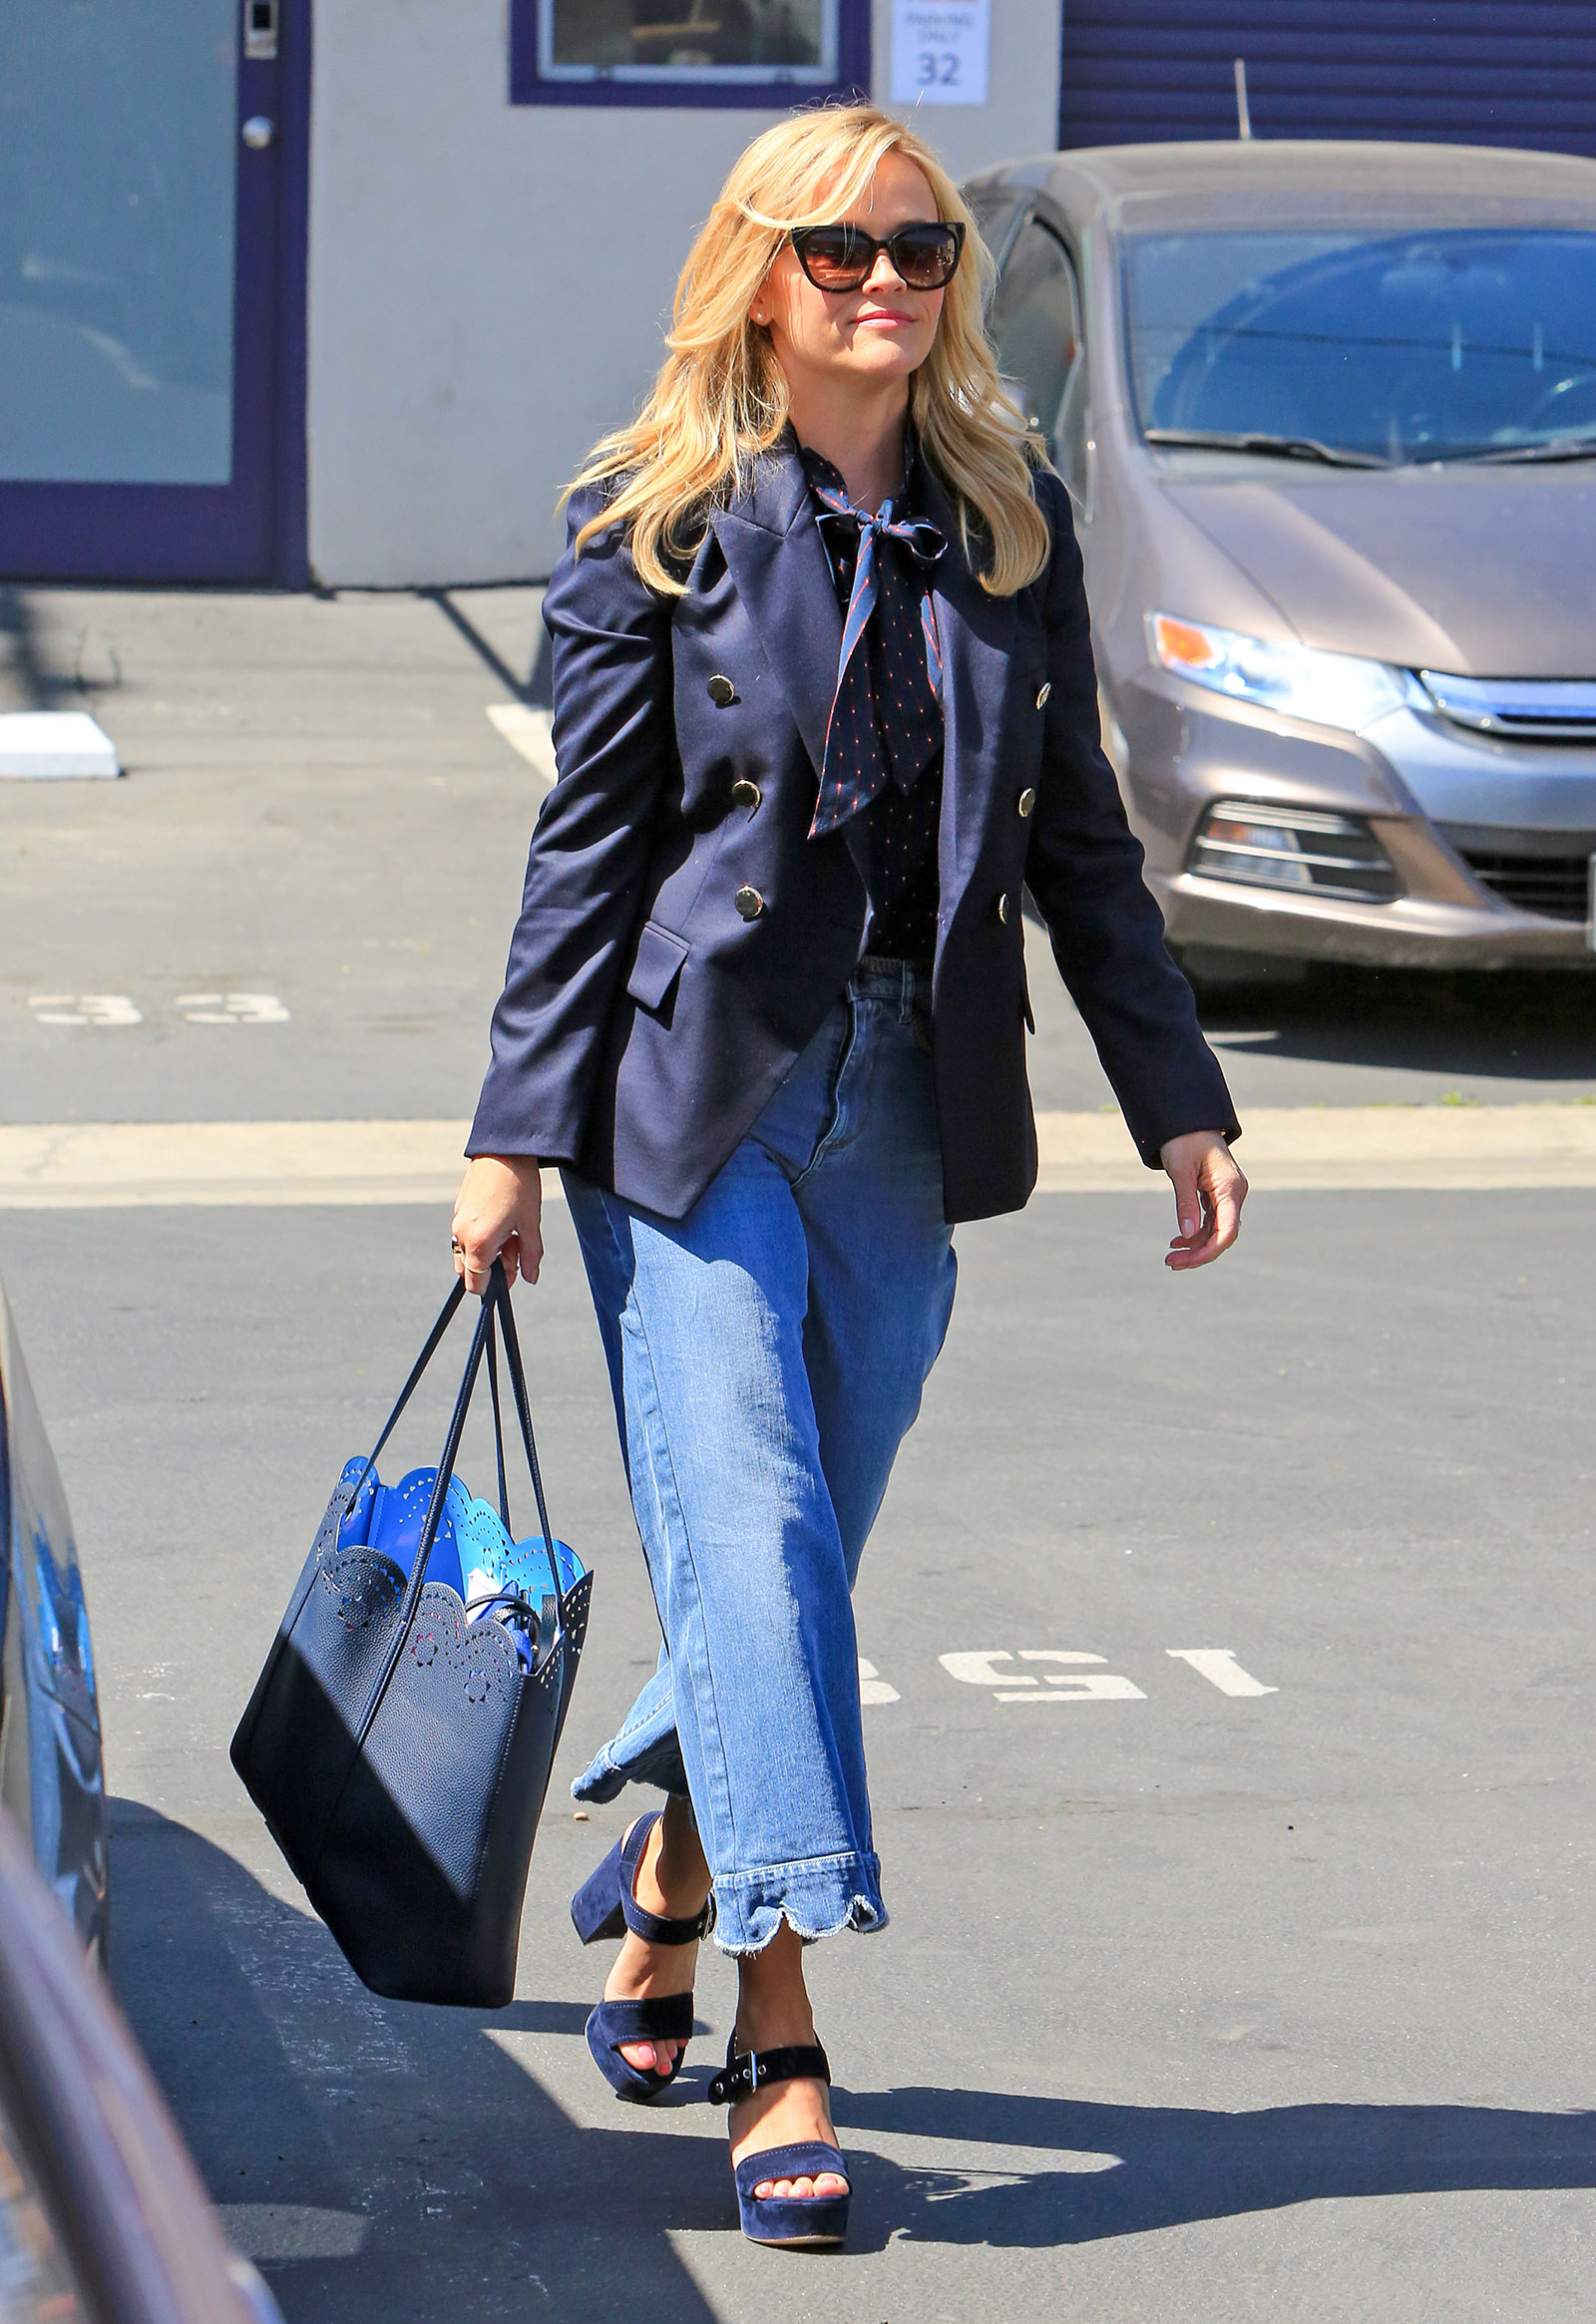 Reese Witherspoon's Scallop-Hem Jeans & Blazer